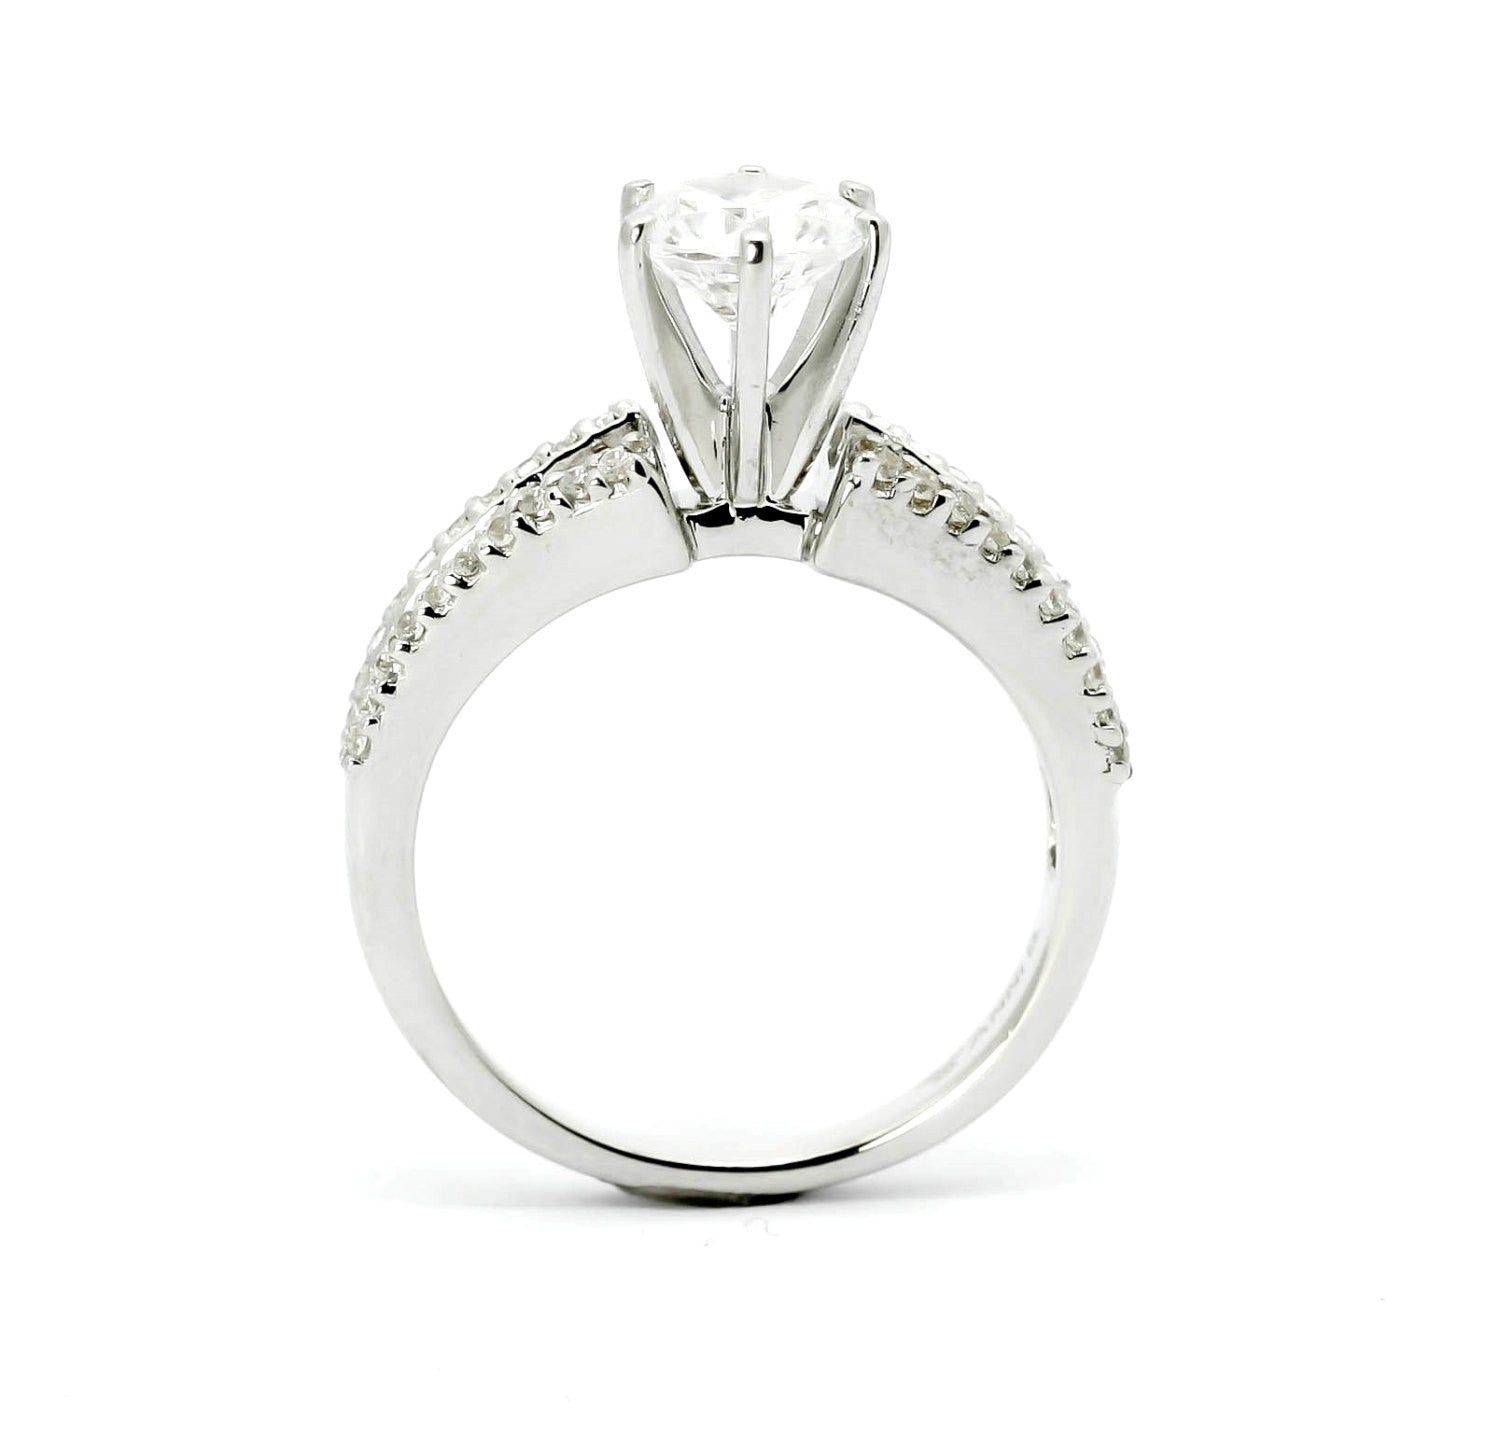 Moissanite Engagement Ring, Unique Solitaire With 6.5 mm Forever Brilliant Moissanite & .64 Carat Diamonds, Anniversary Ring - FBY11603